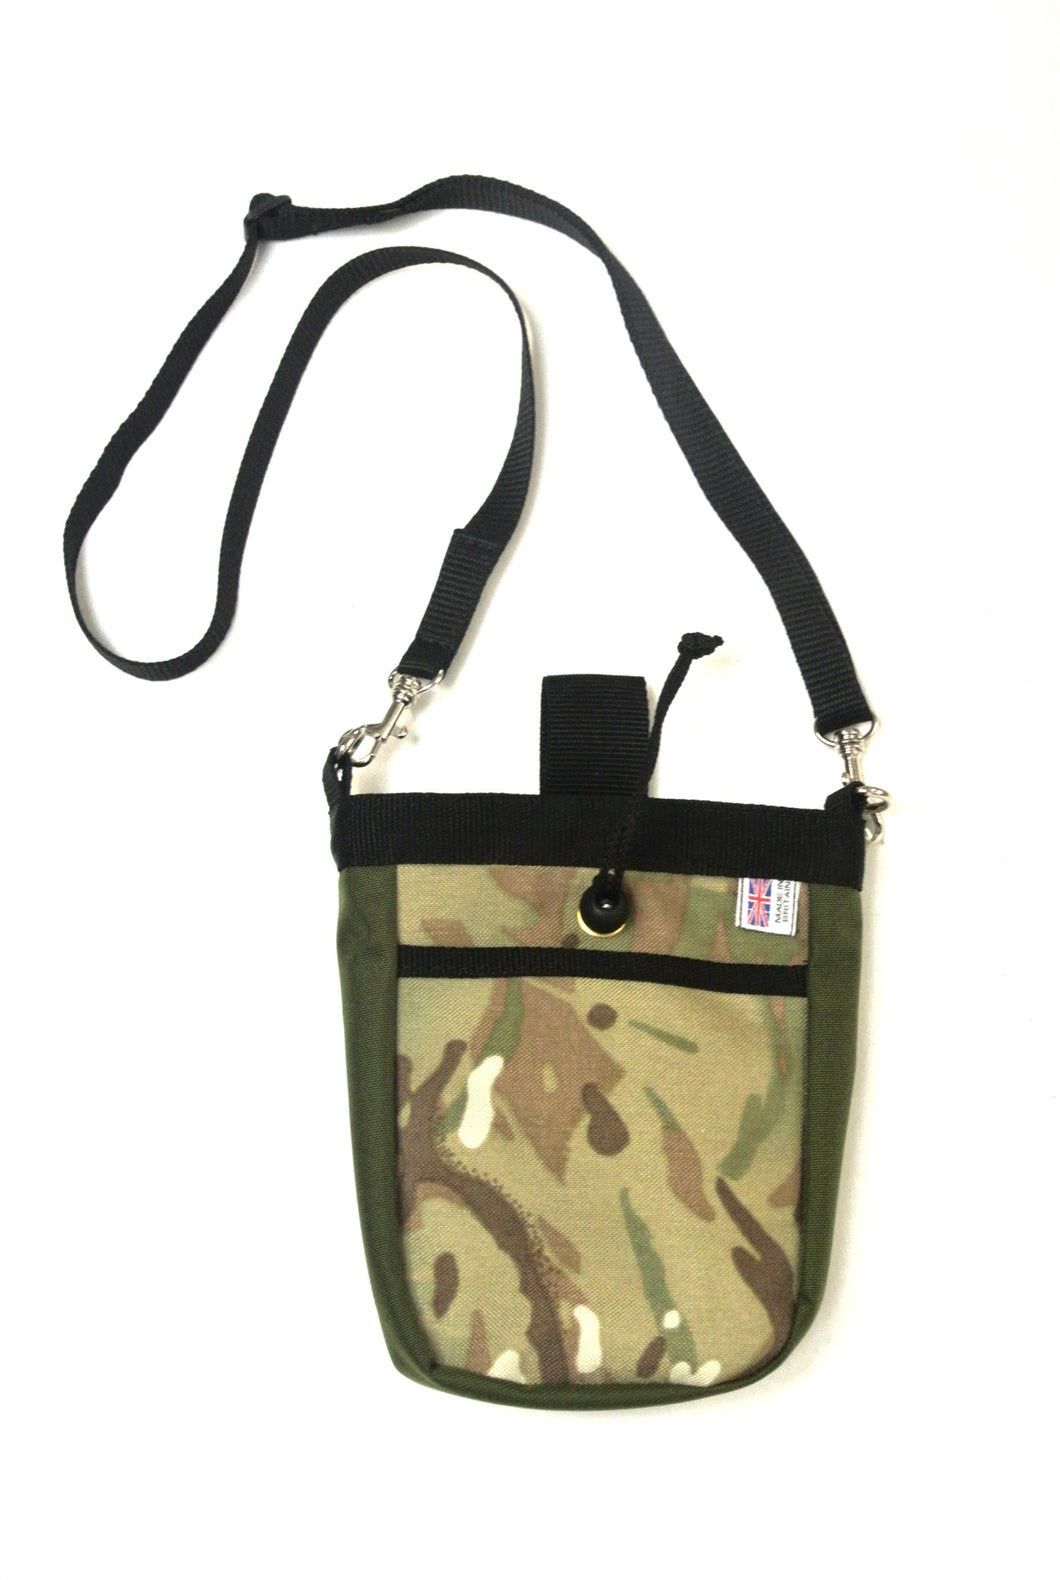 Multi-Use Pet/Dog Treat Bag Training Pouch Storage Holder With Shoulder Strap In Various Styles